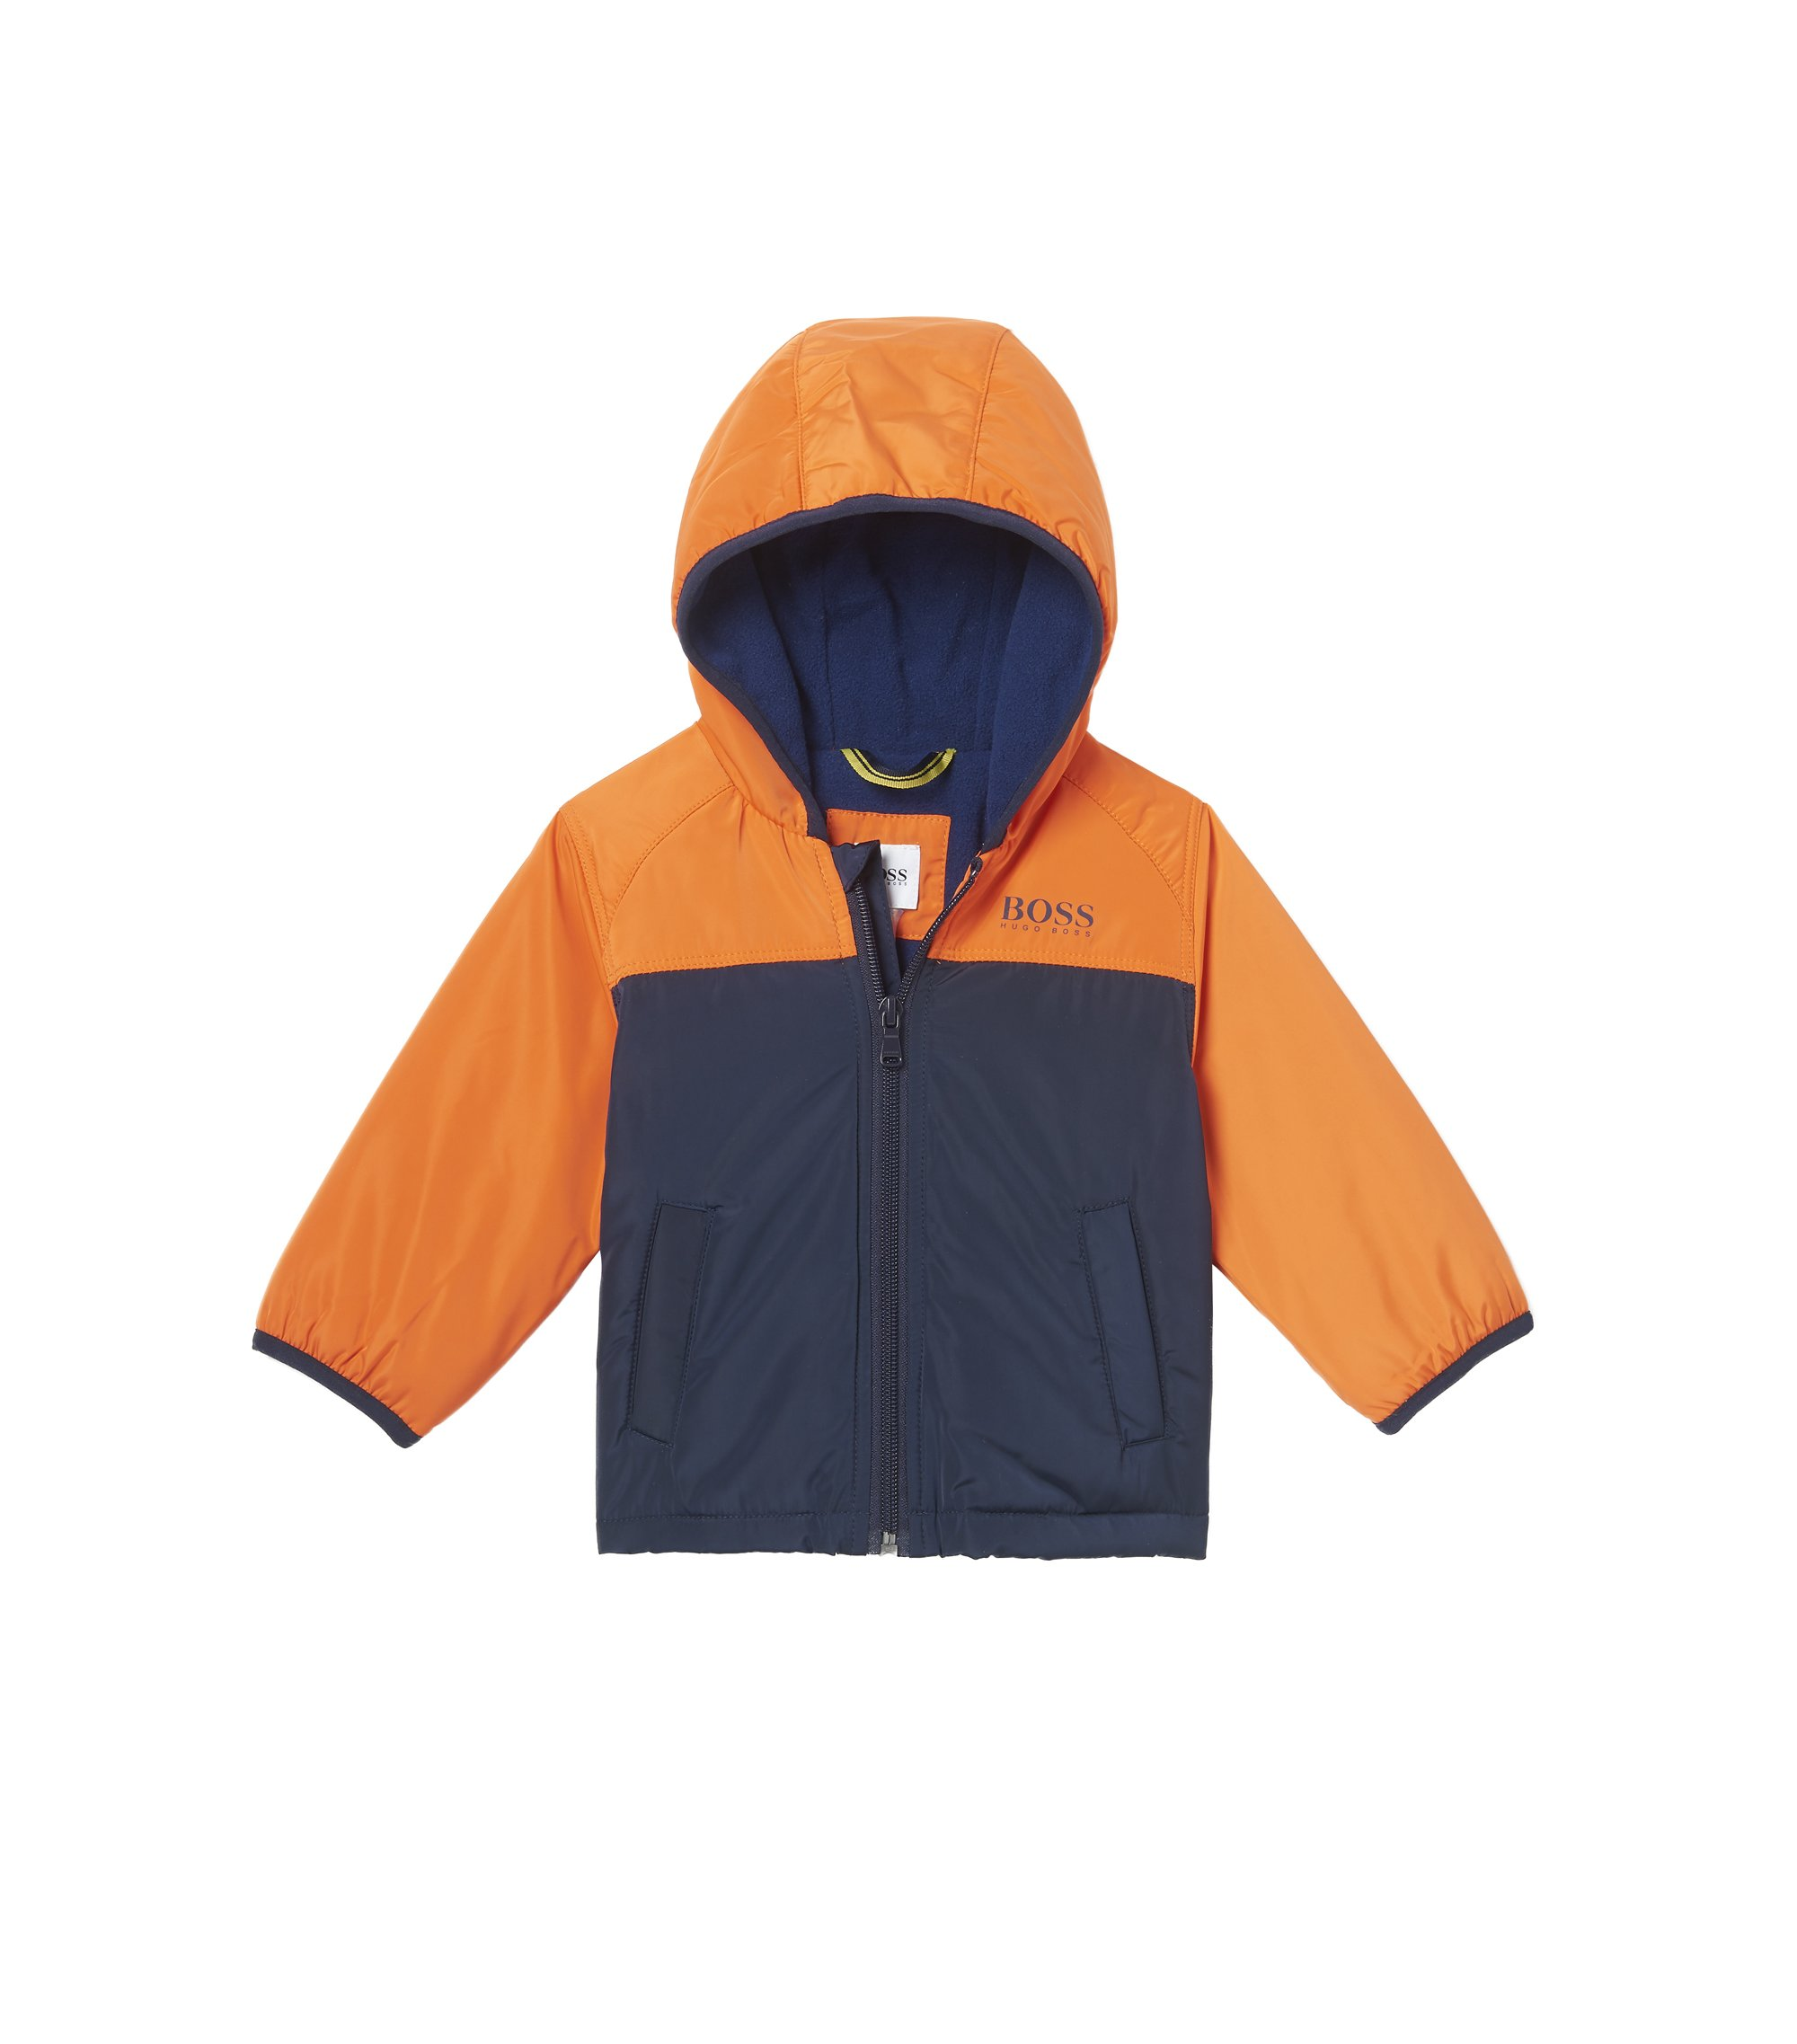 'J06144' | Nylon Fleece Lined Hooded Jacket, Orange